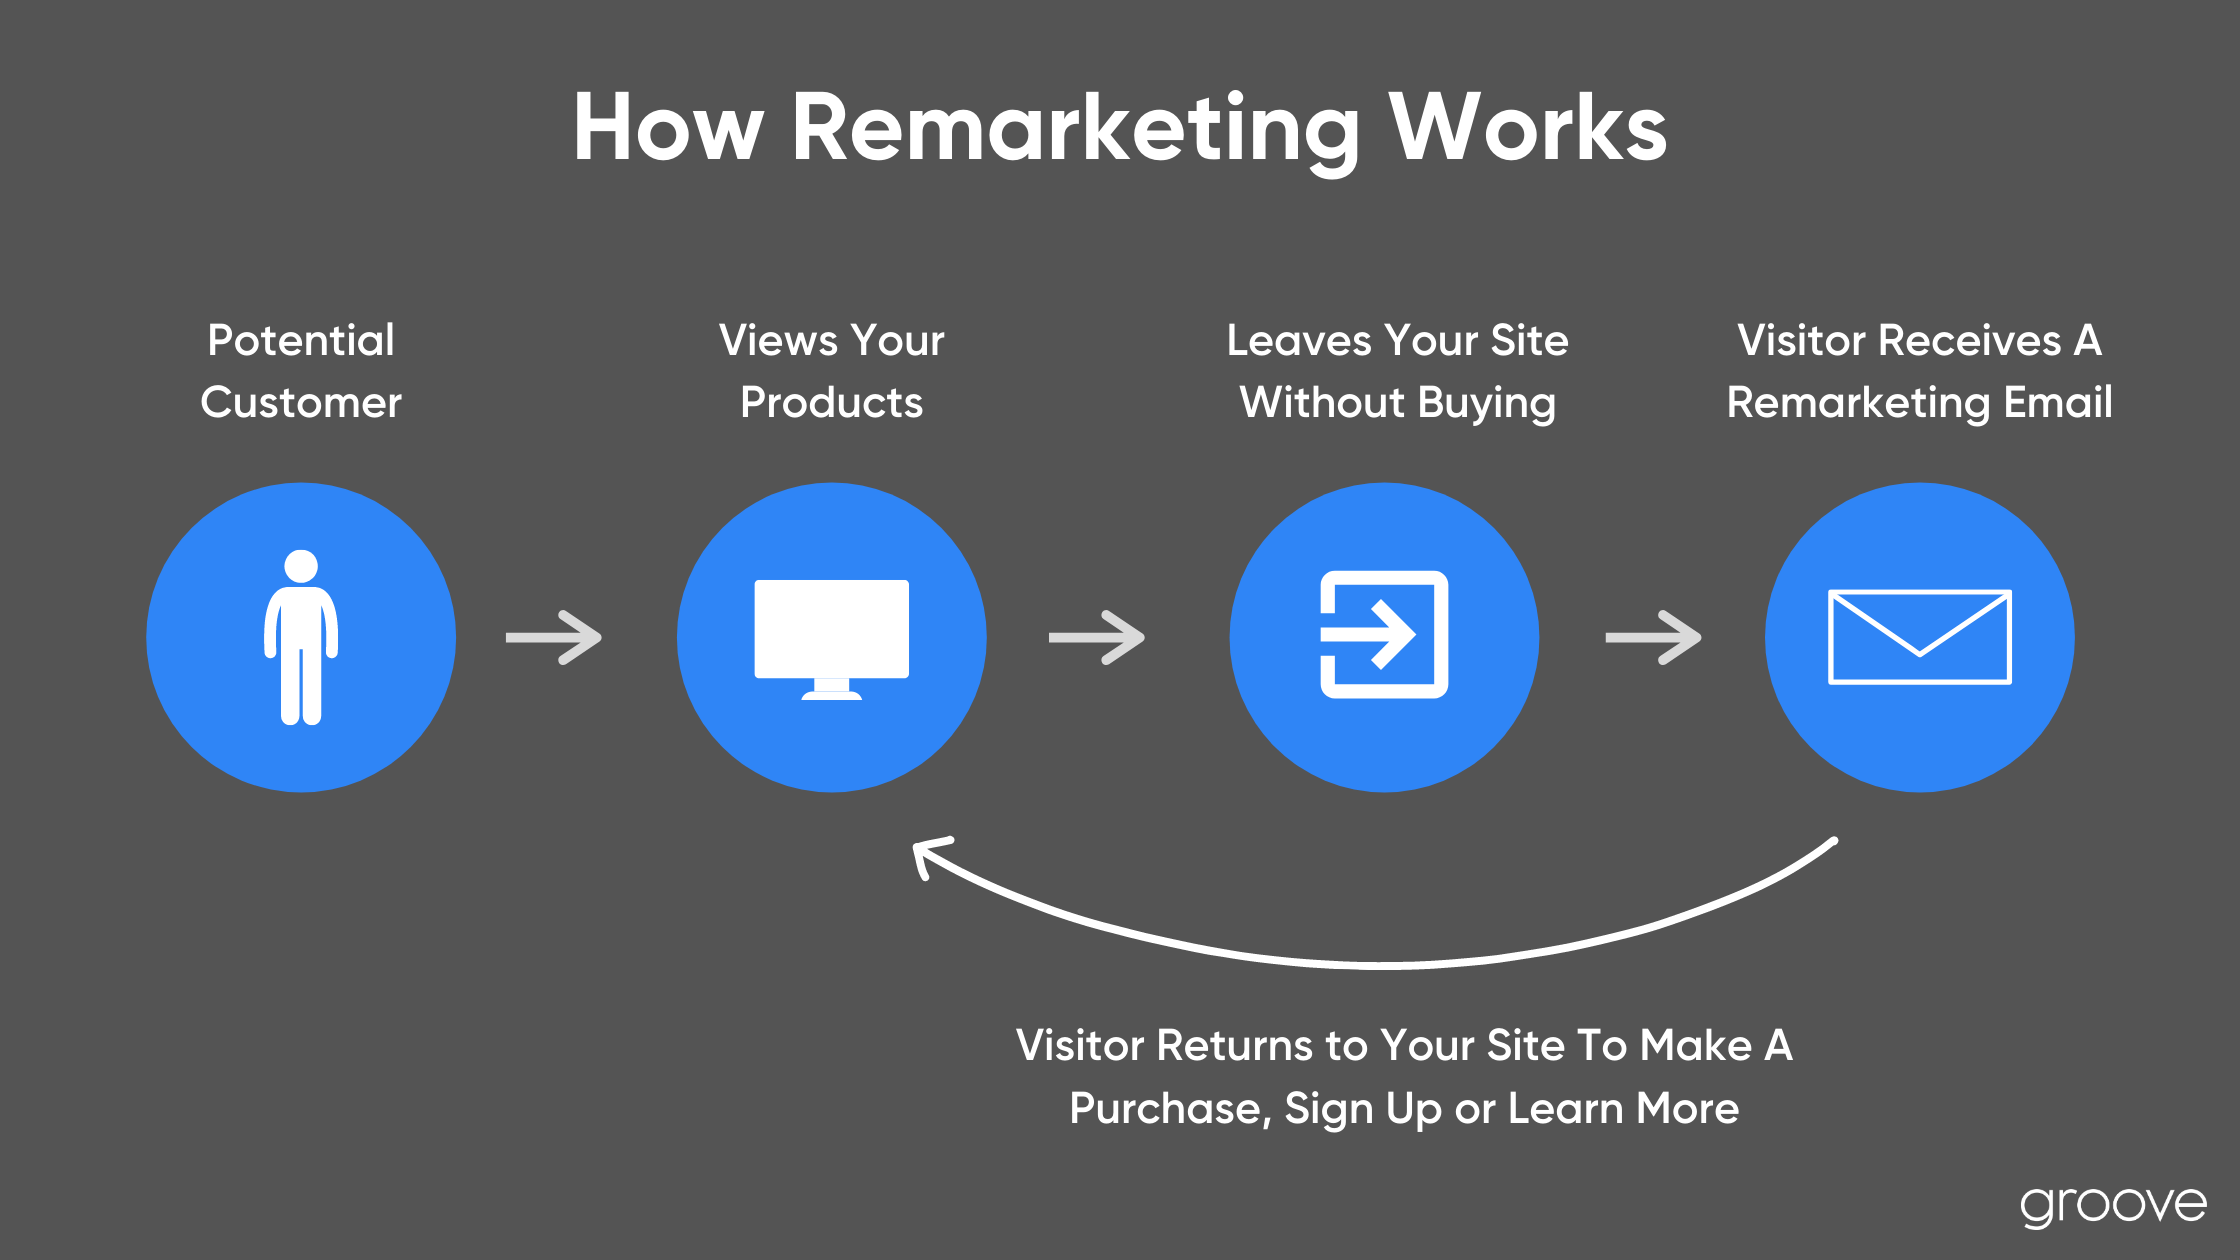 Holiday Planning: How Remarketing Works